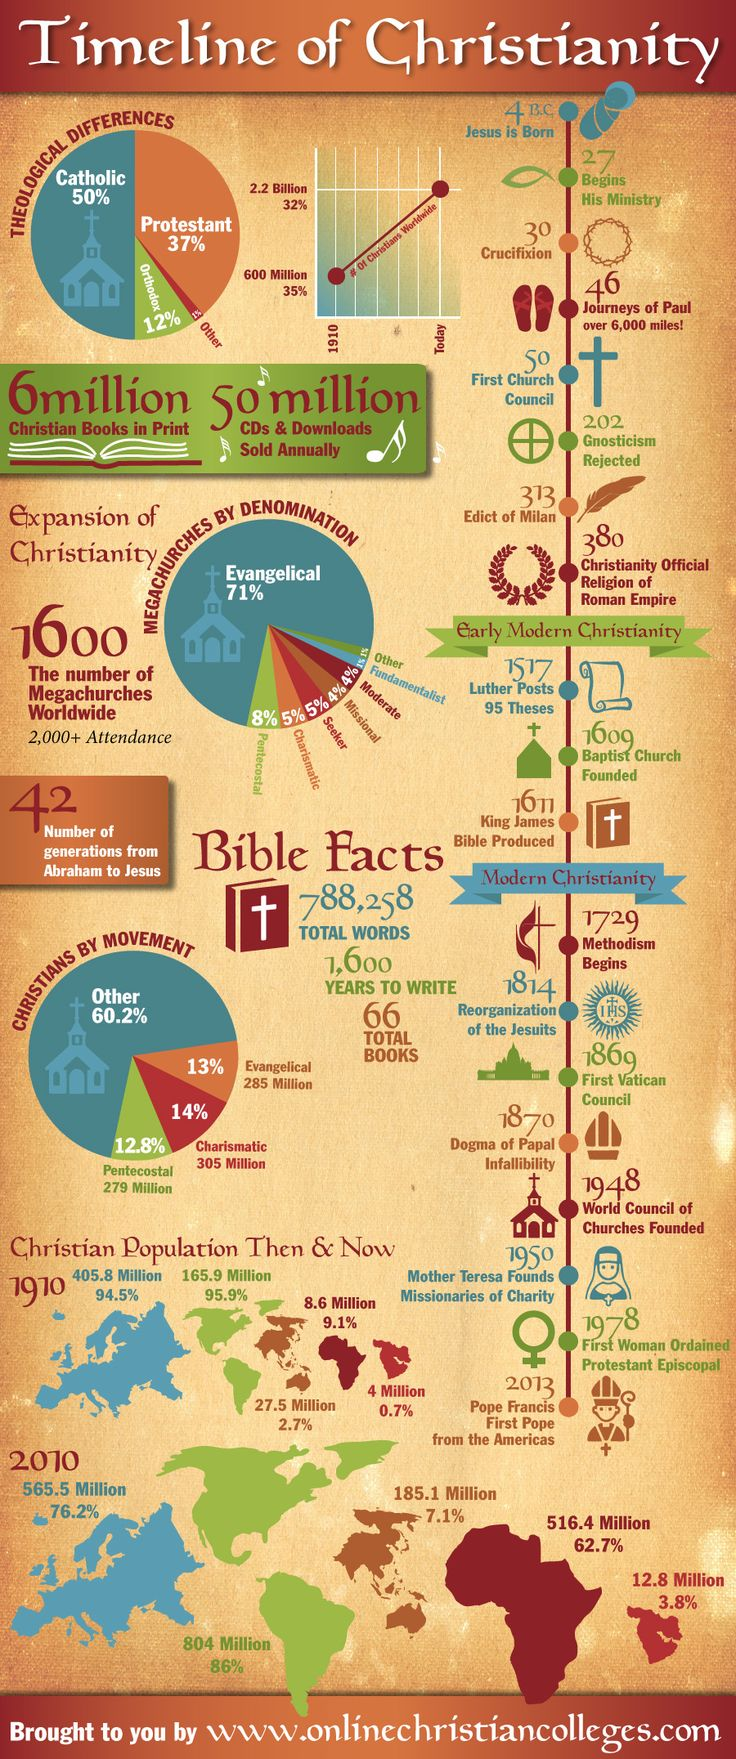 A Timeline of Christianity